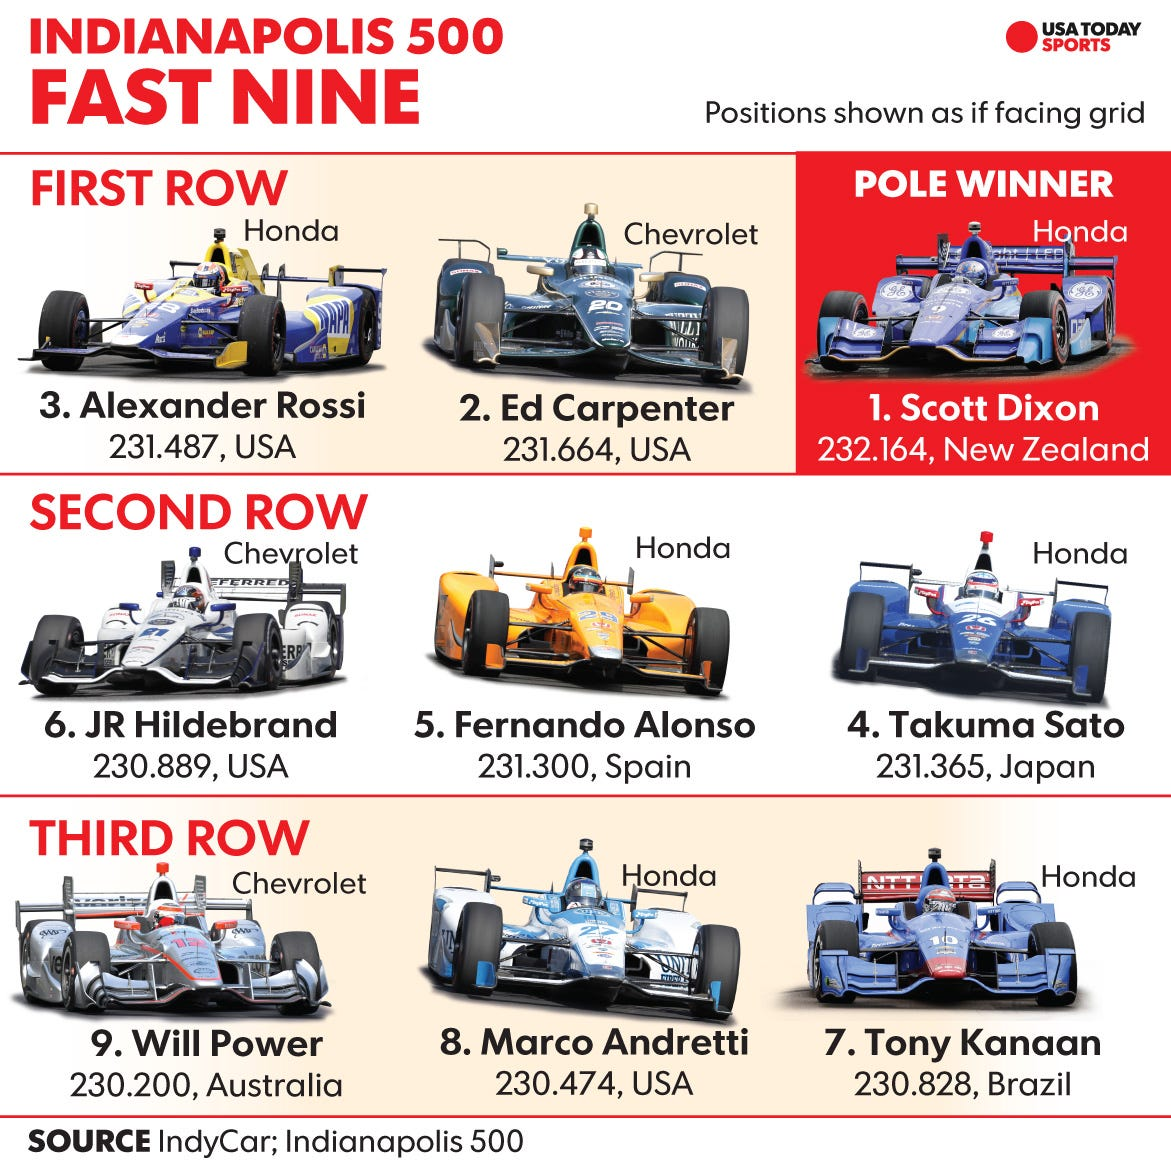 scott dixon wins indianapolis 500 pole with fastest speed in 21 years usa today sports. Black Bedroom Furniture Sets. Home Design Ideas